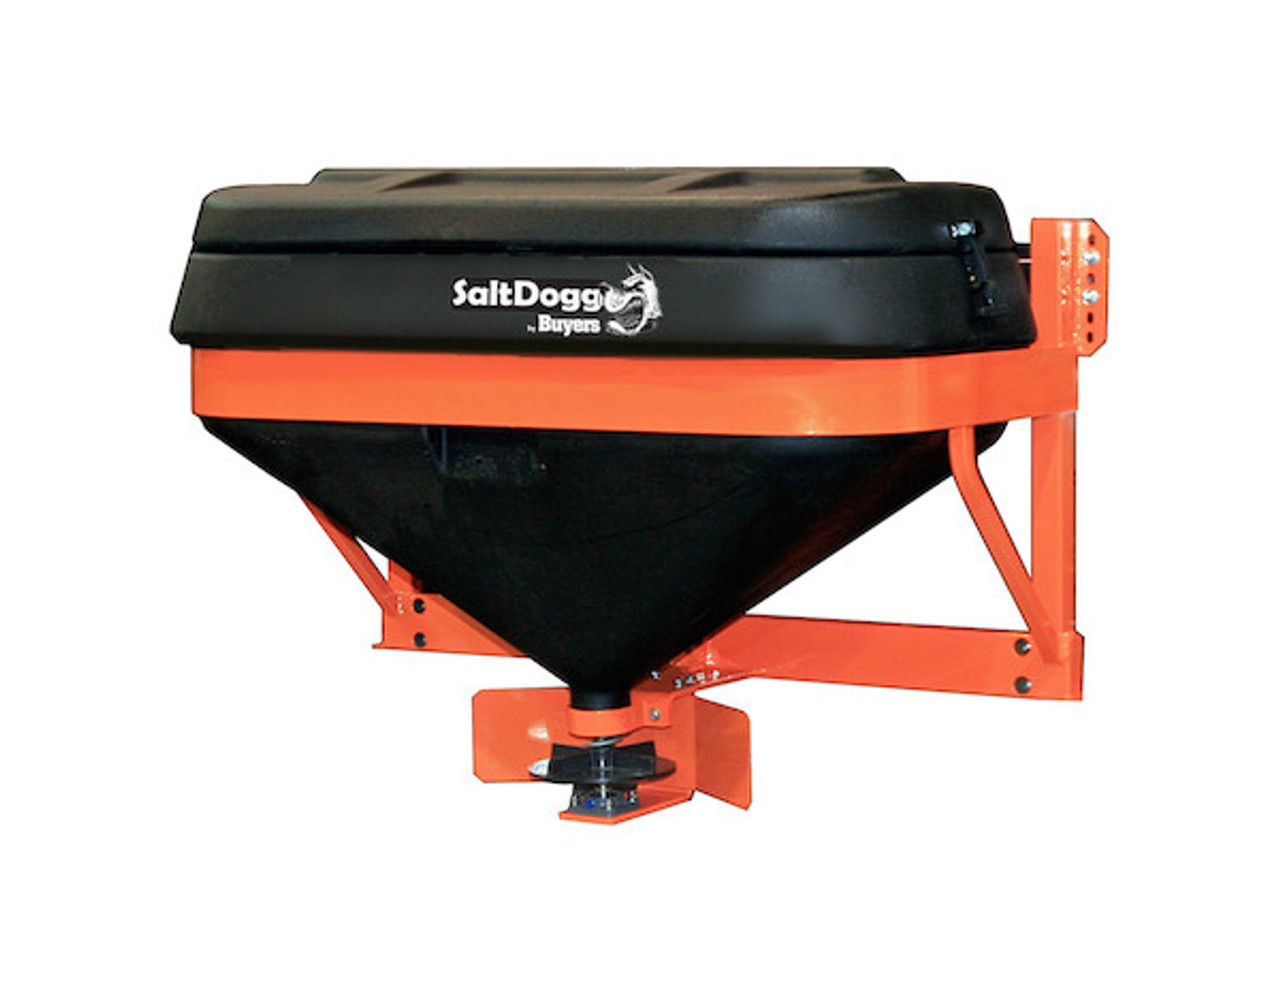 TGS05B BUYERS SALTDOGG 10.79 CUBIC FOOT TAILGATE SPREADER